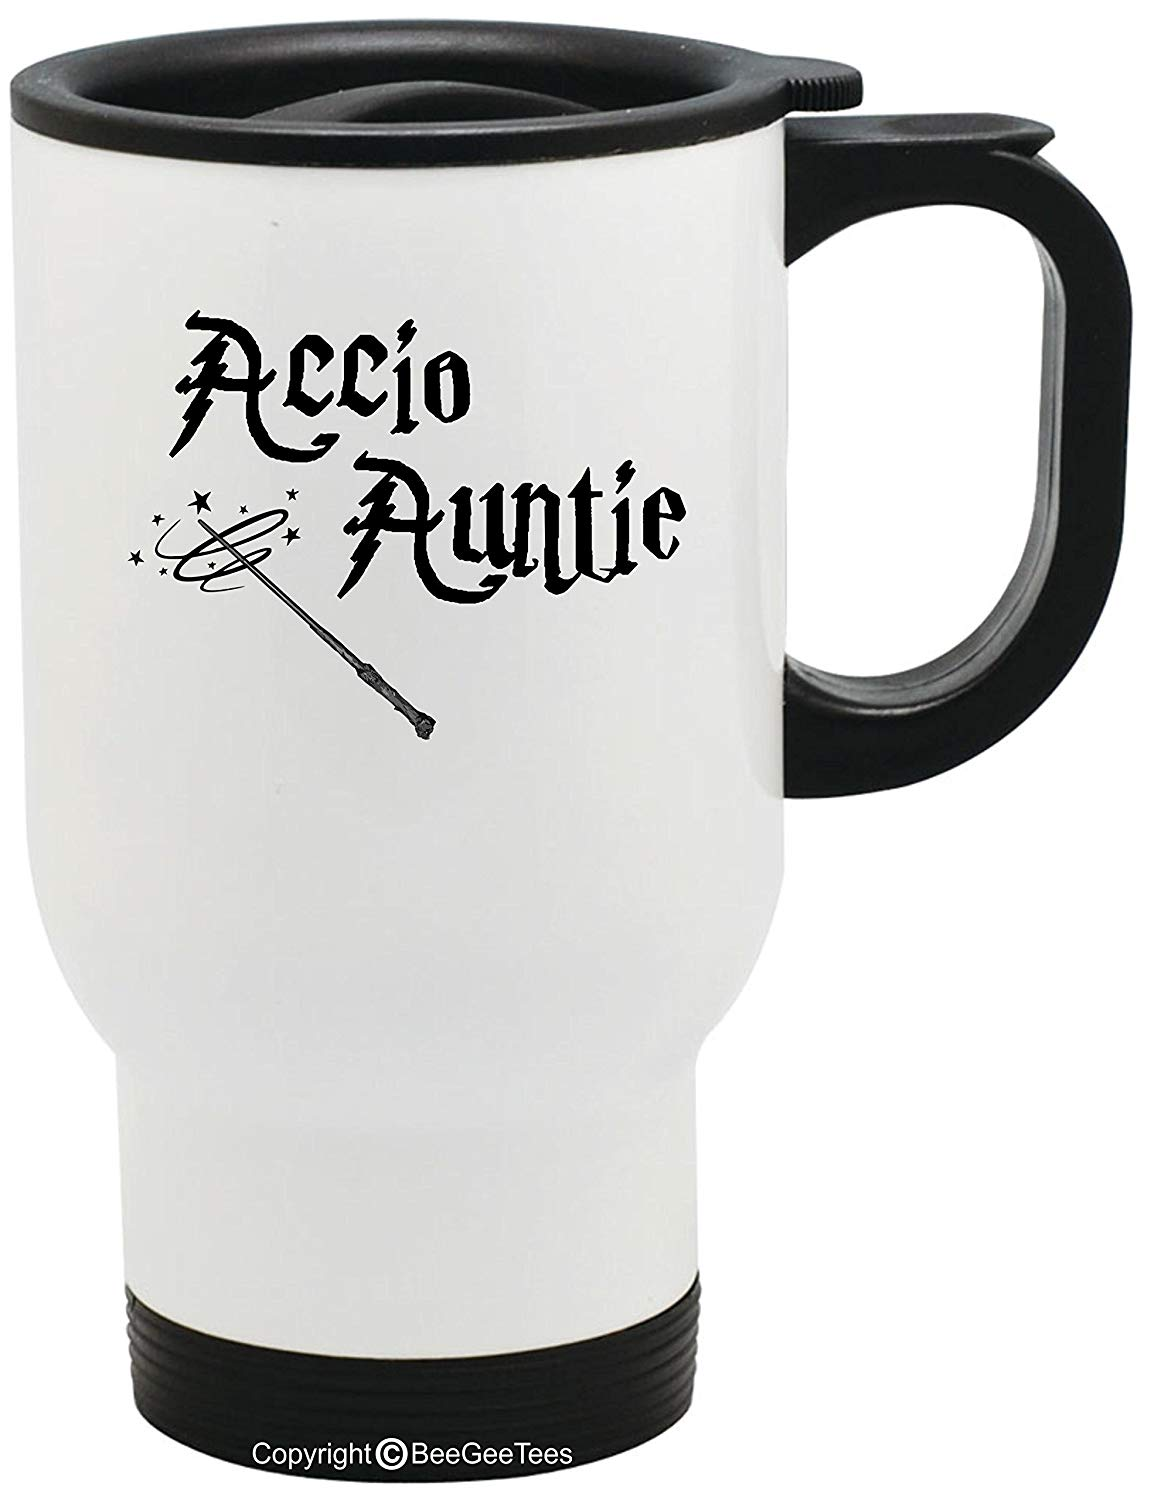 Accio Auntie Funny Harry Potter Inspired Stainless Steel Travel Mug for Wizards by BeeGeeTees (14 oz)